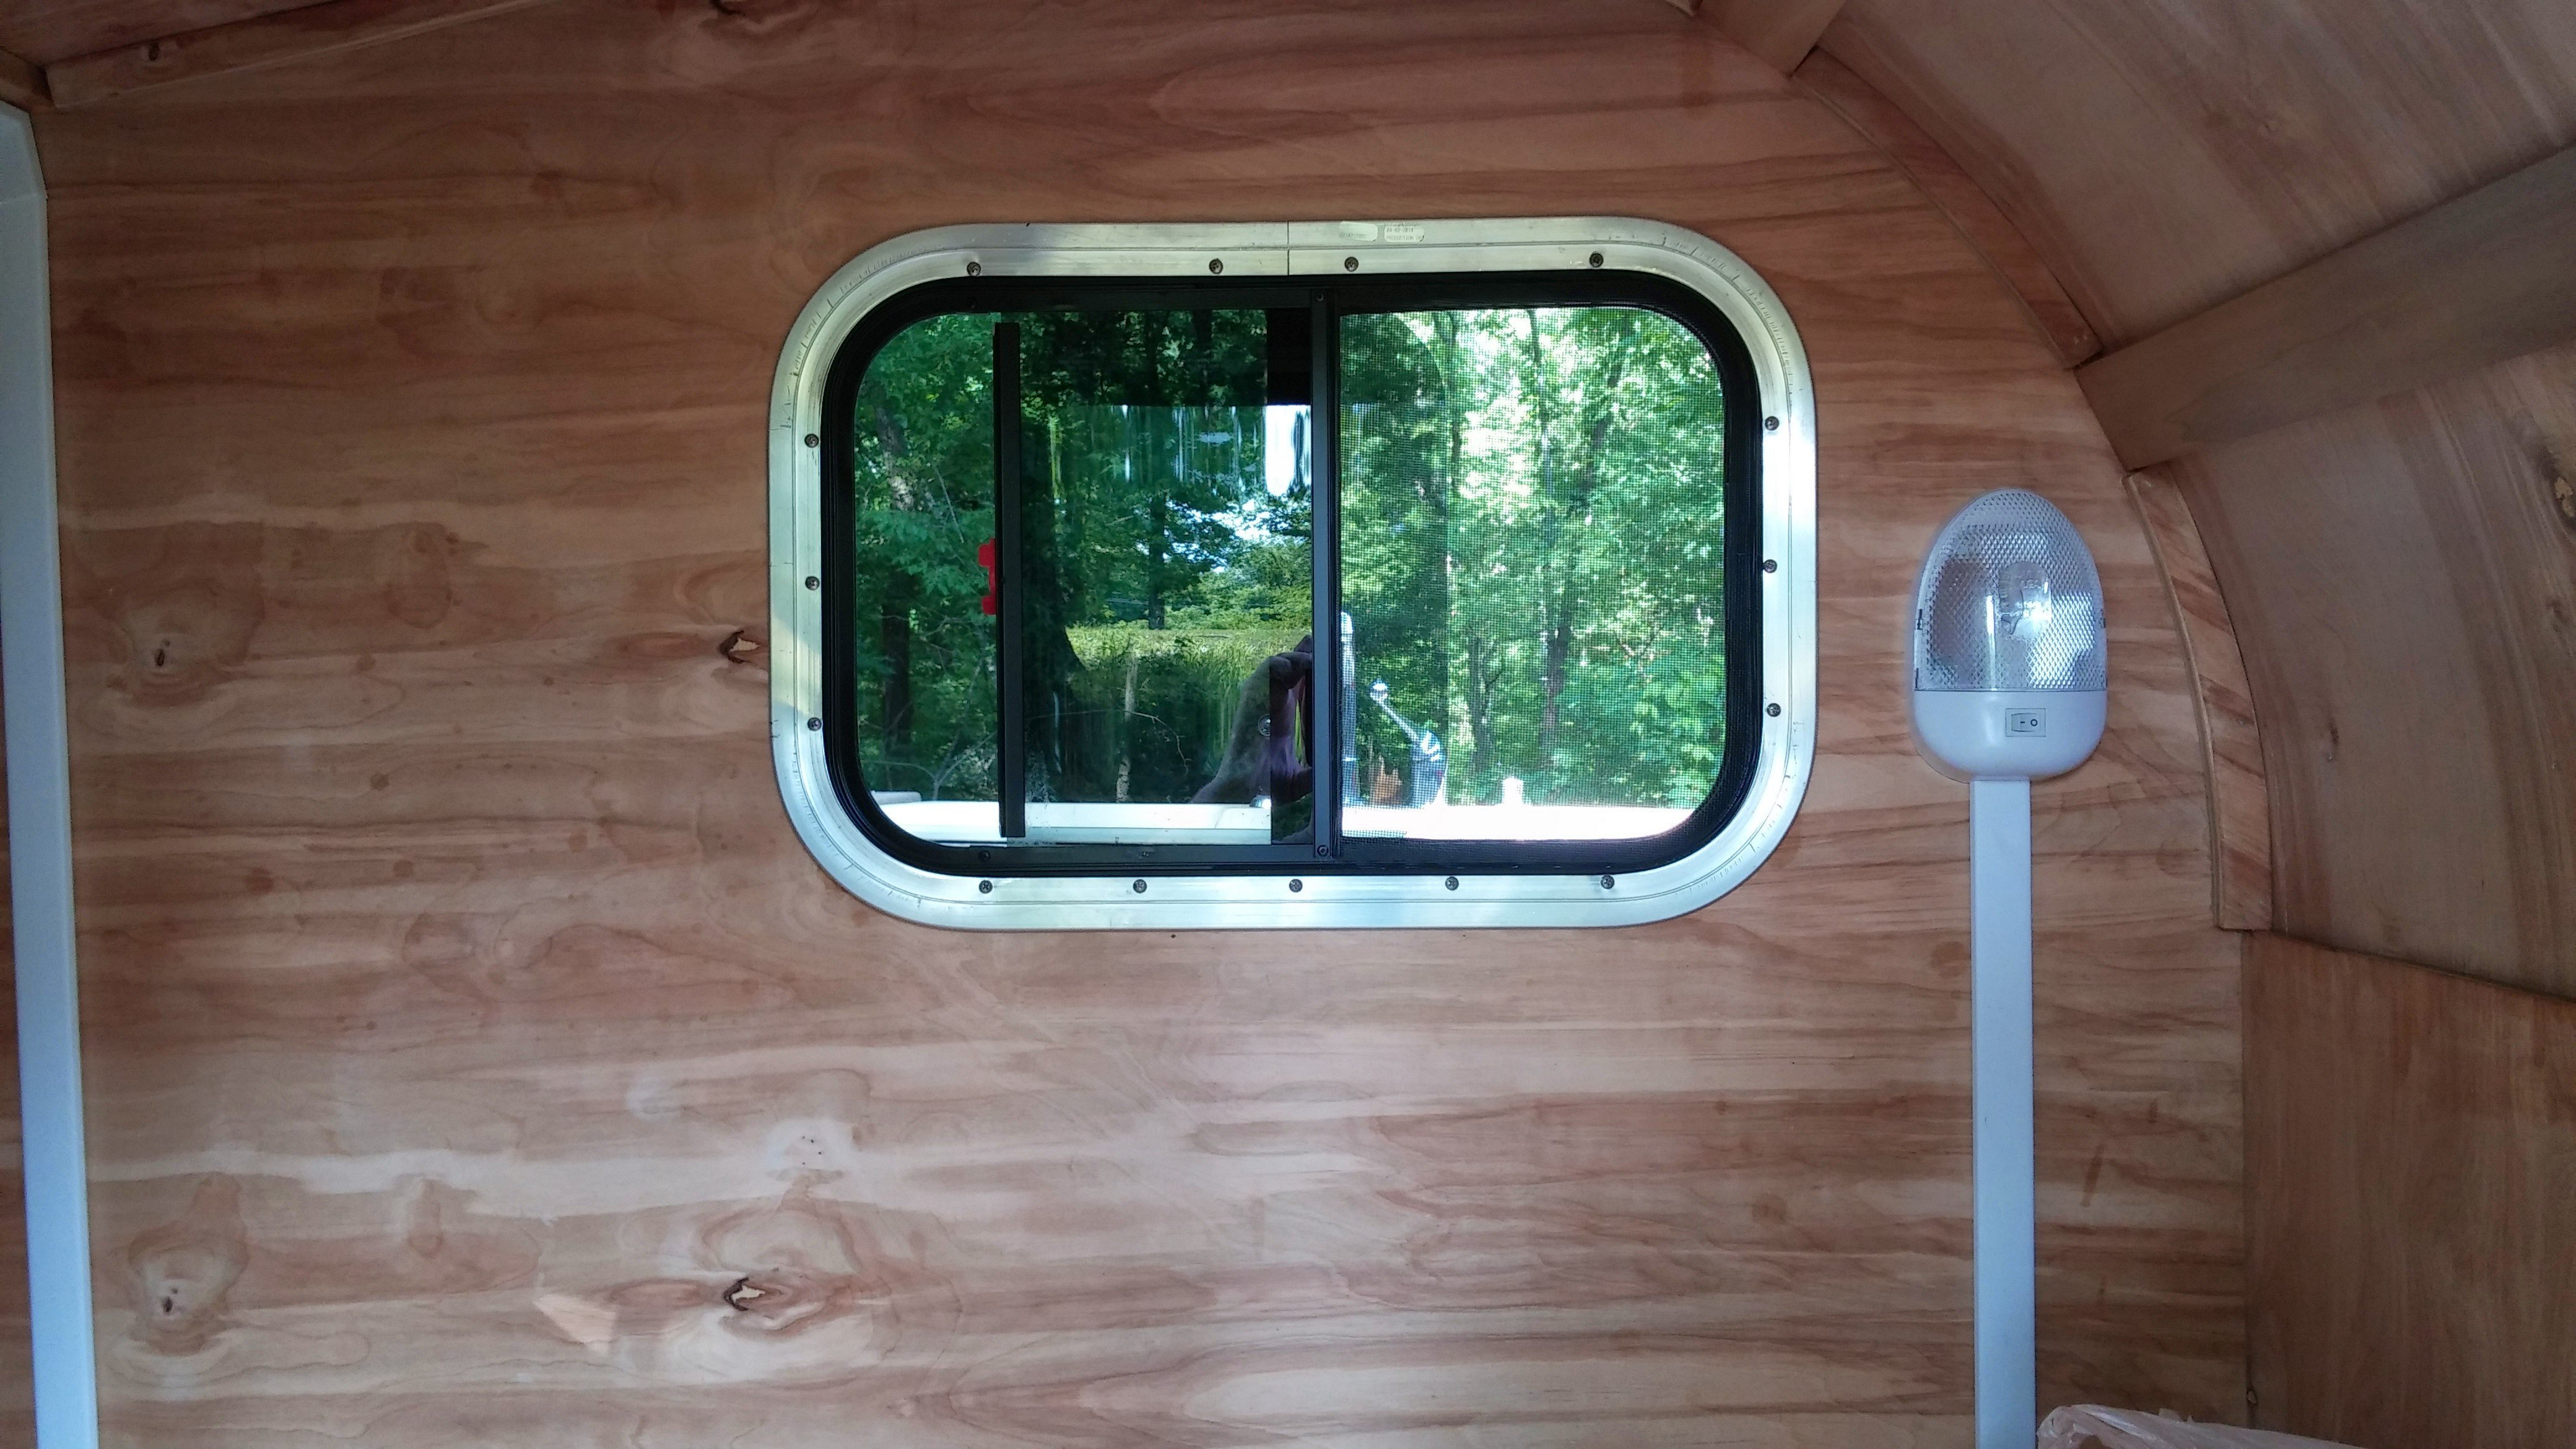 Motorcycle Teardrop Camper Plans (Completed Pictures)